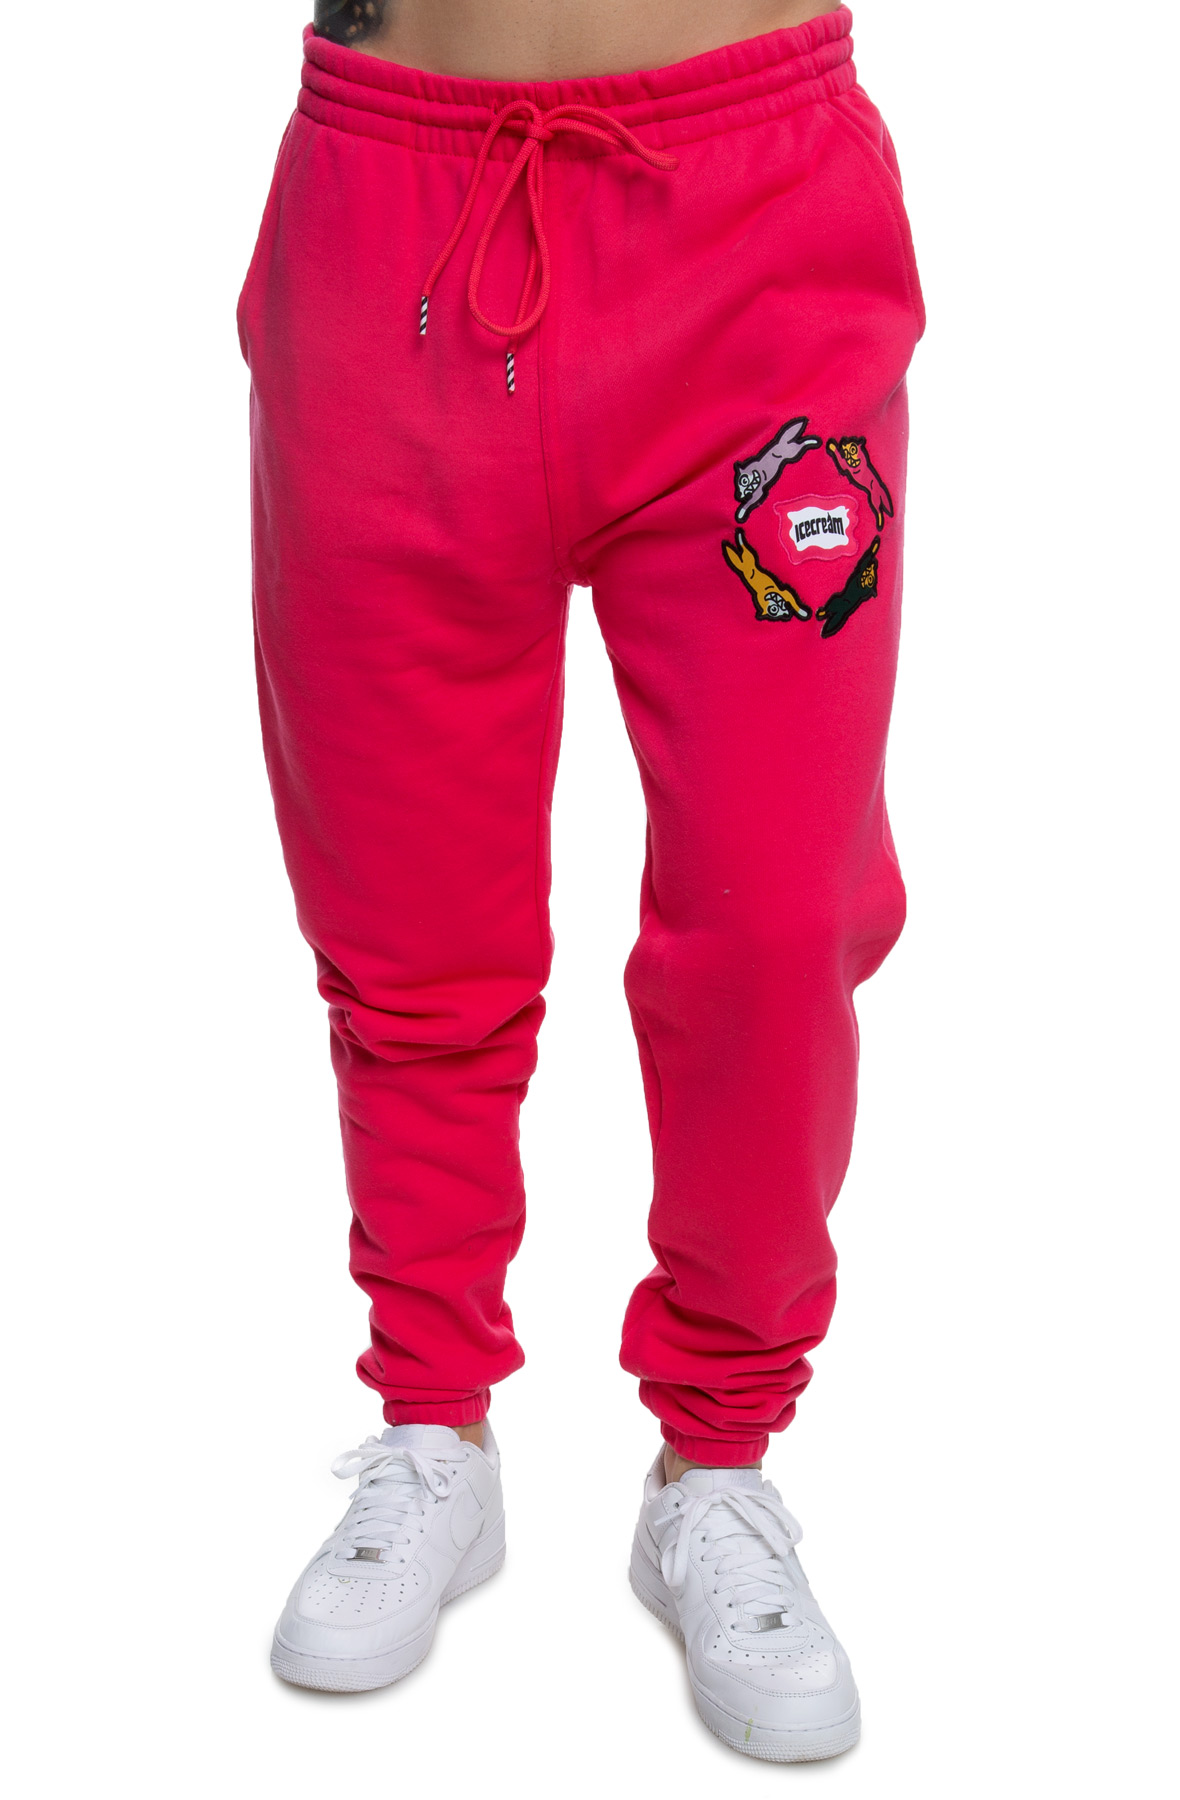 Olson Pant in Raspberry